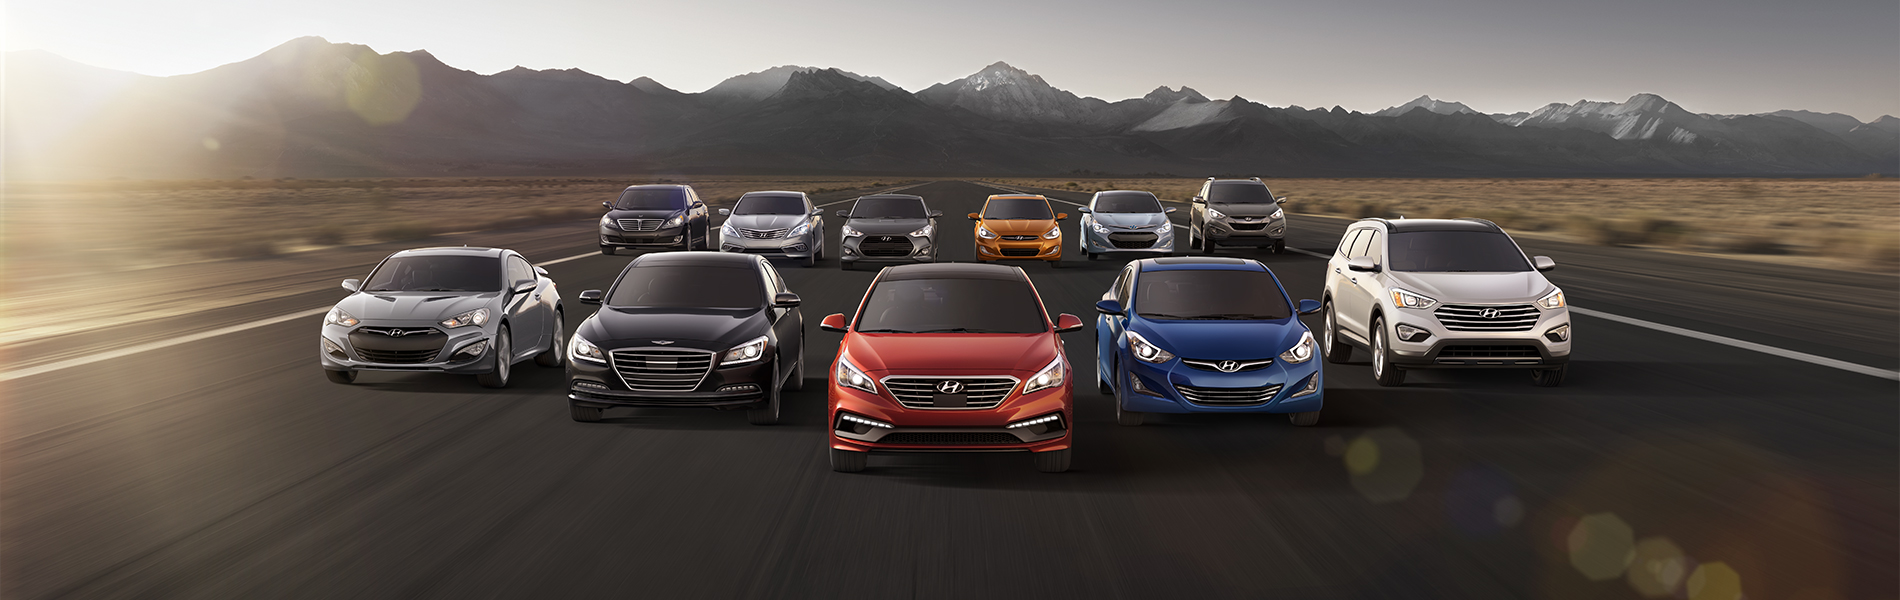 Hyundai has been one of the fastest-growing automobile companies in America. This diverse lineup incorporates quality, safety, performance and luxury, all while retaining great value.